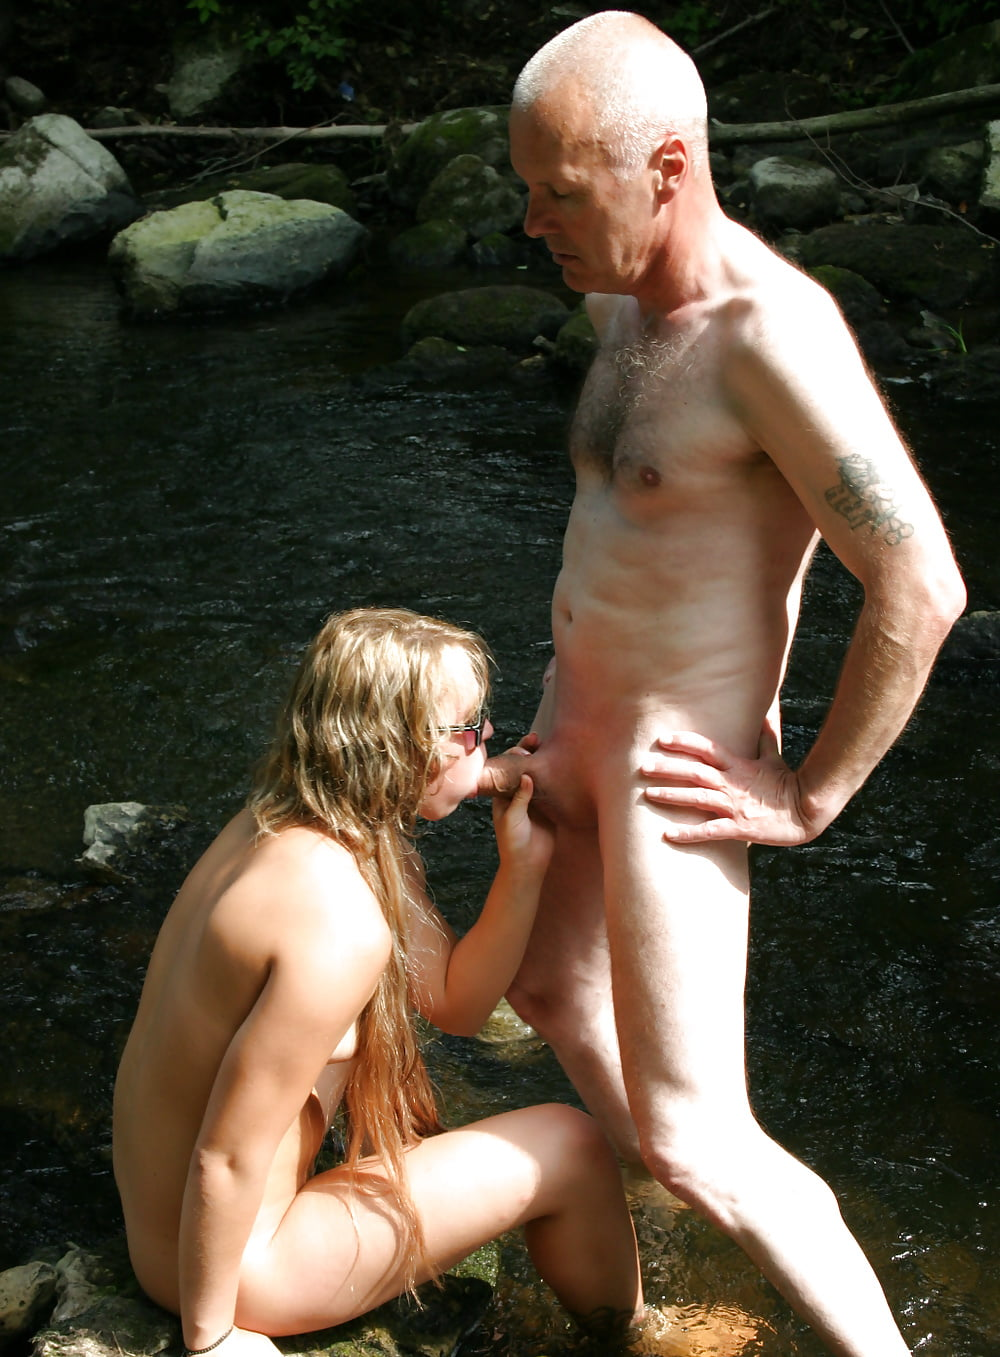 Ulf larsen fucked 35 years age difference - 2 part 2